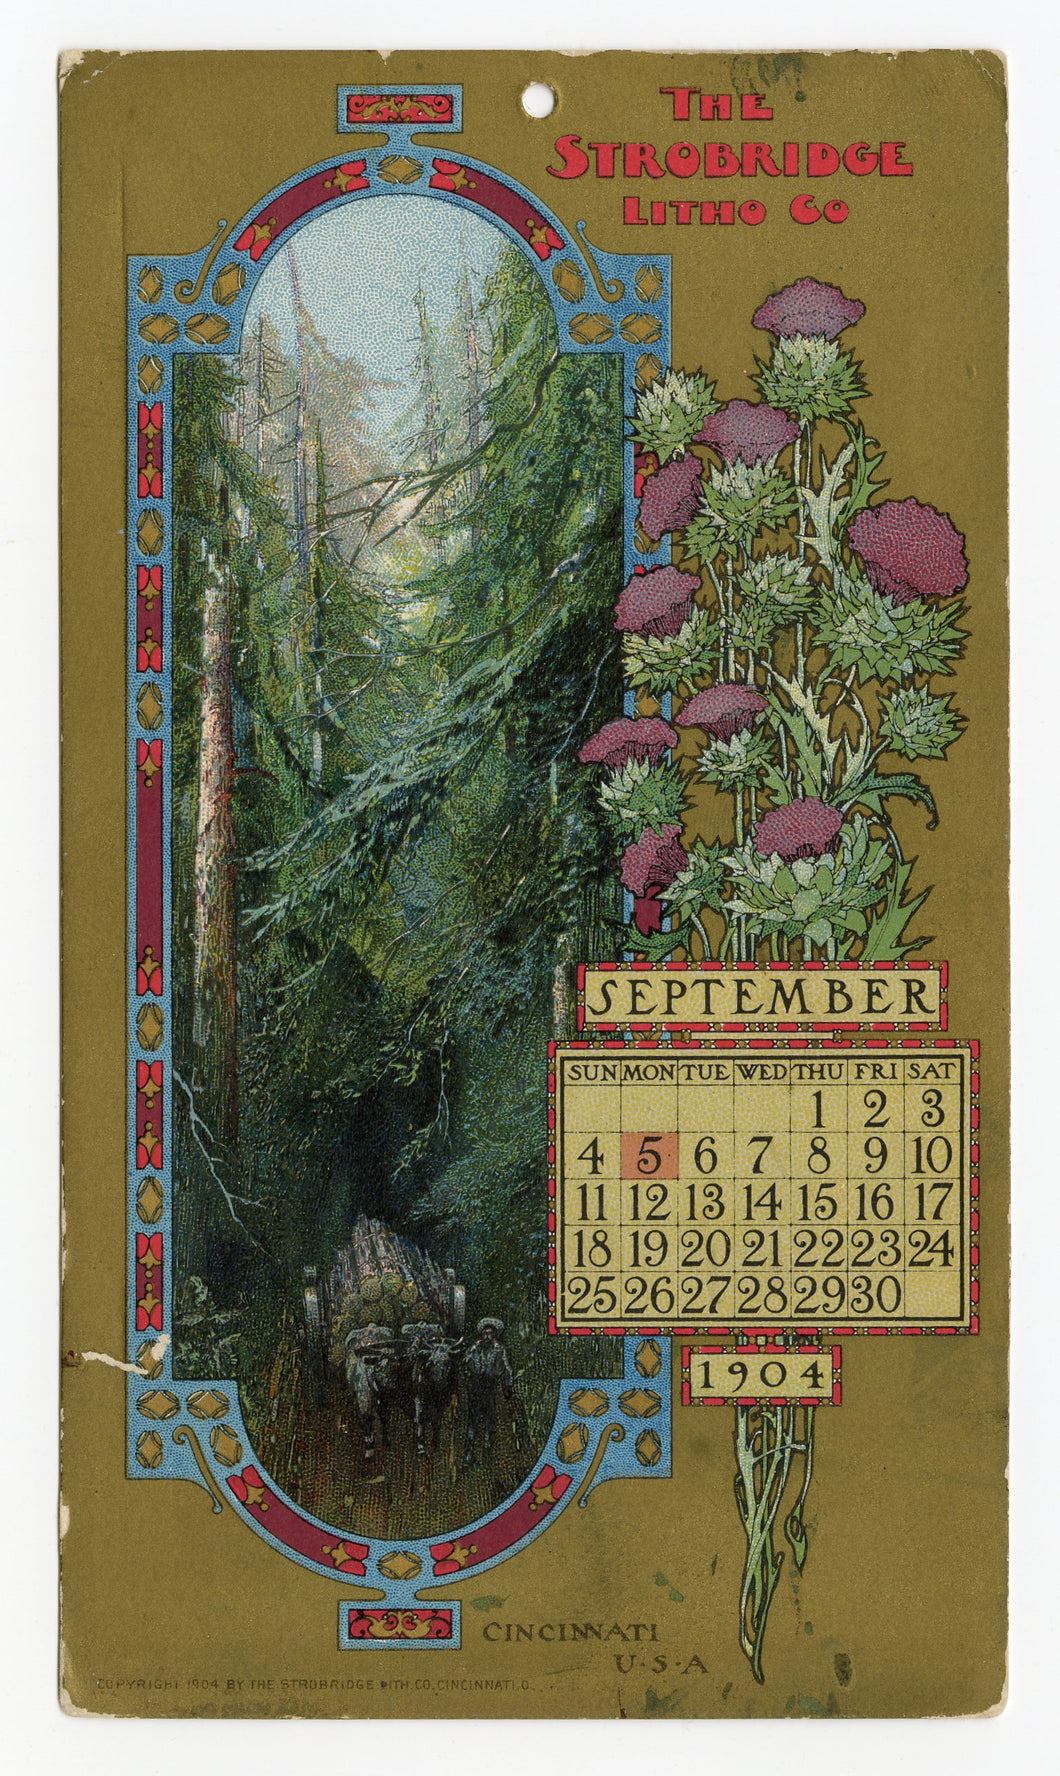 September 1904 STROBRIDGE LITHO CO. Promotional Calendar Cards, Elaborate Illustrations